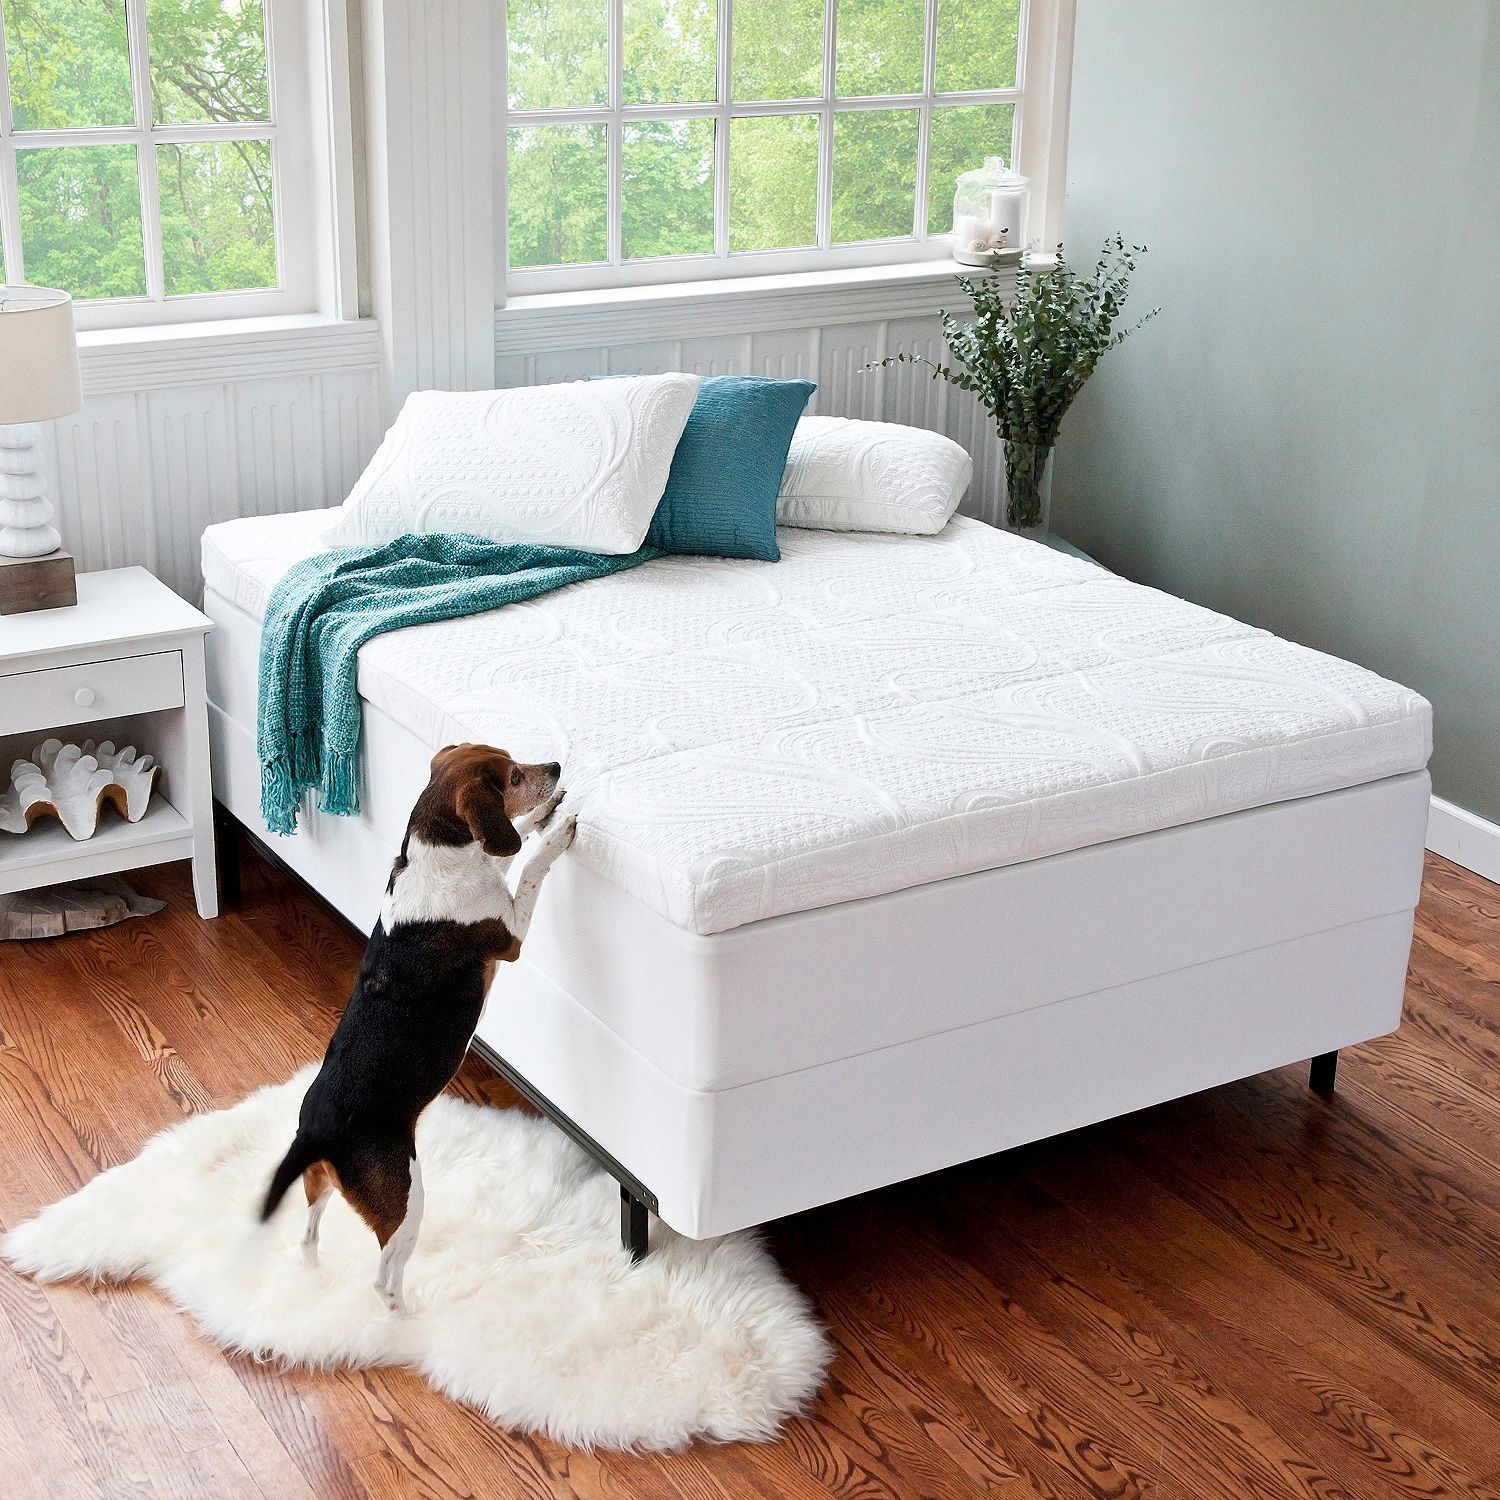 Here's What To Look For When Buying A New Mattress